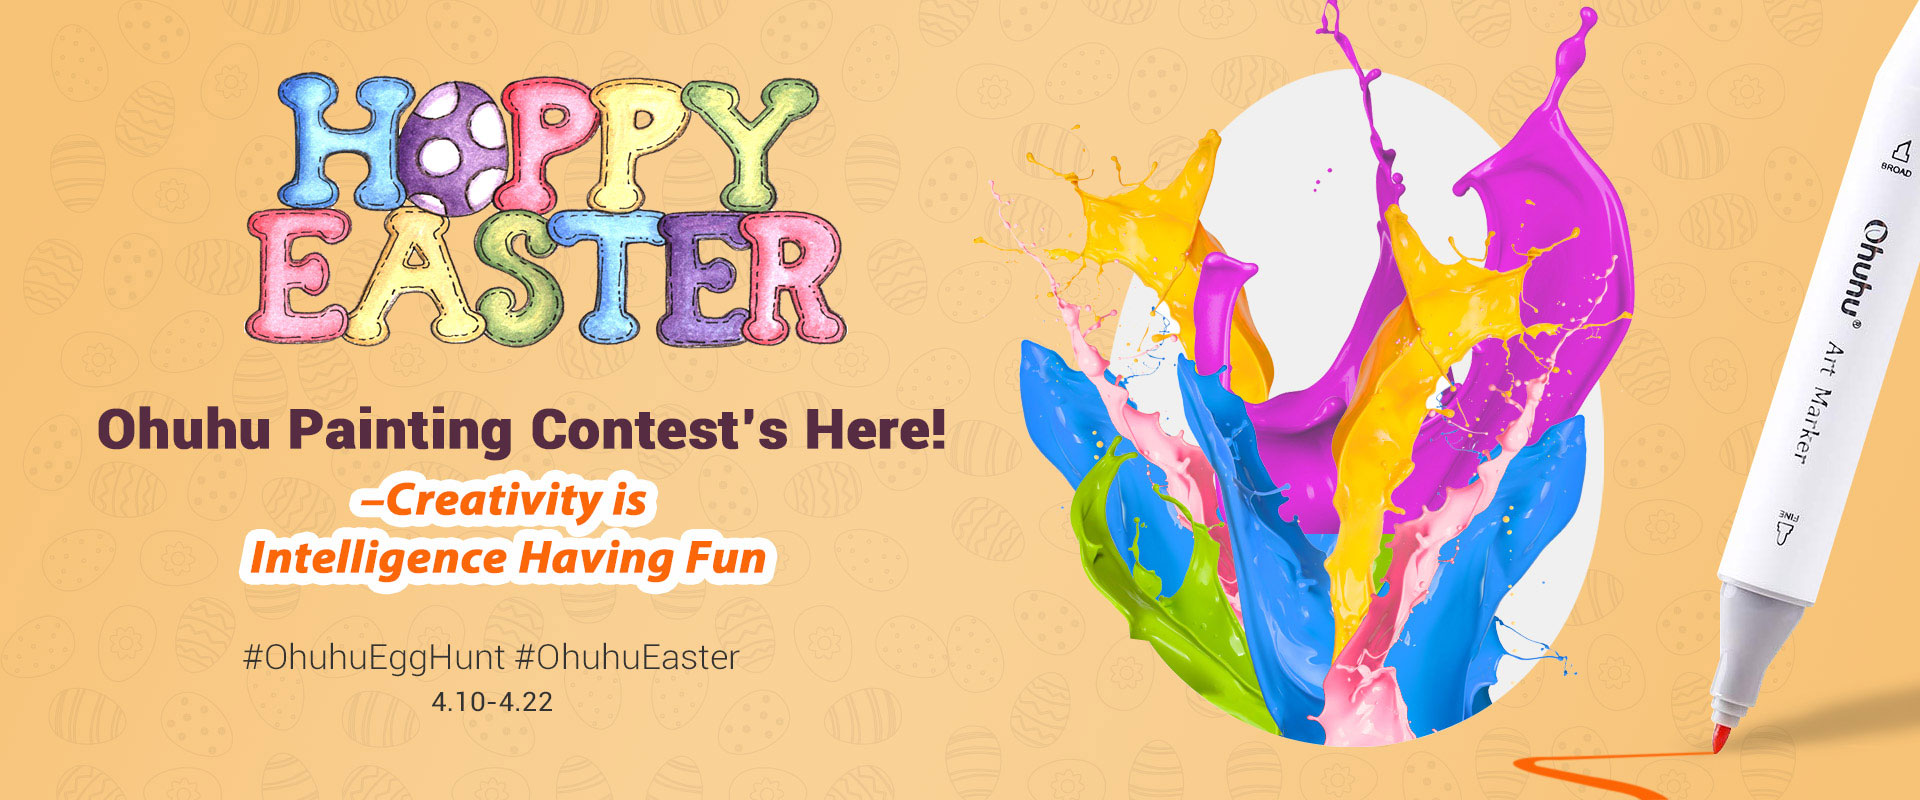 Enter the Ohuhu Easter Painting Contest for your chance to win Ohuhu Markers 120 Colors Set valued at $64.99 each. There will be 10 US Winners, 3 winners from Canada, and 3 winners from Europe.